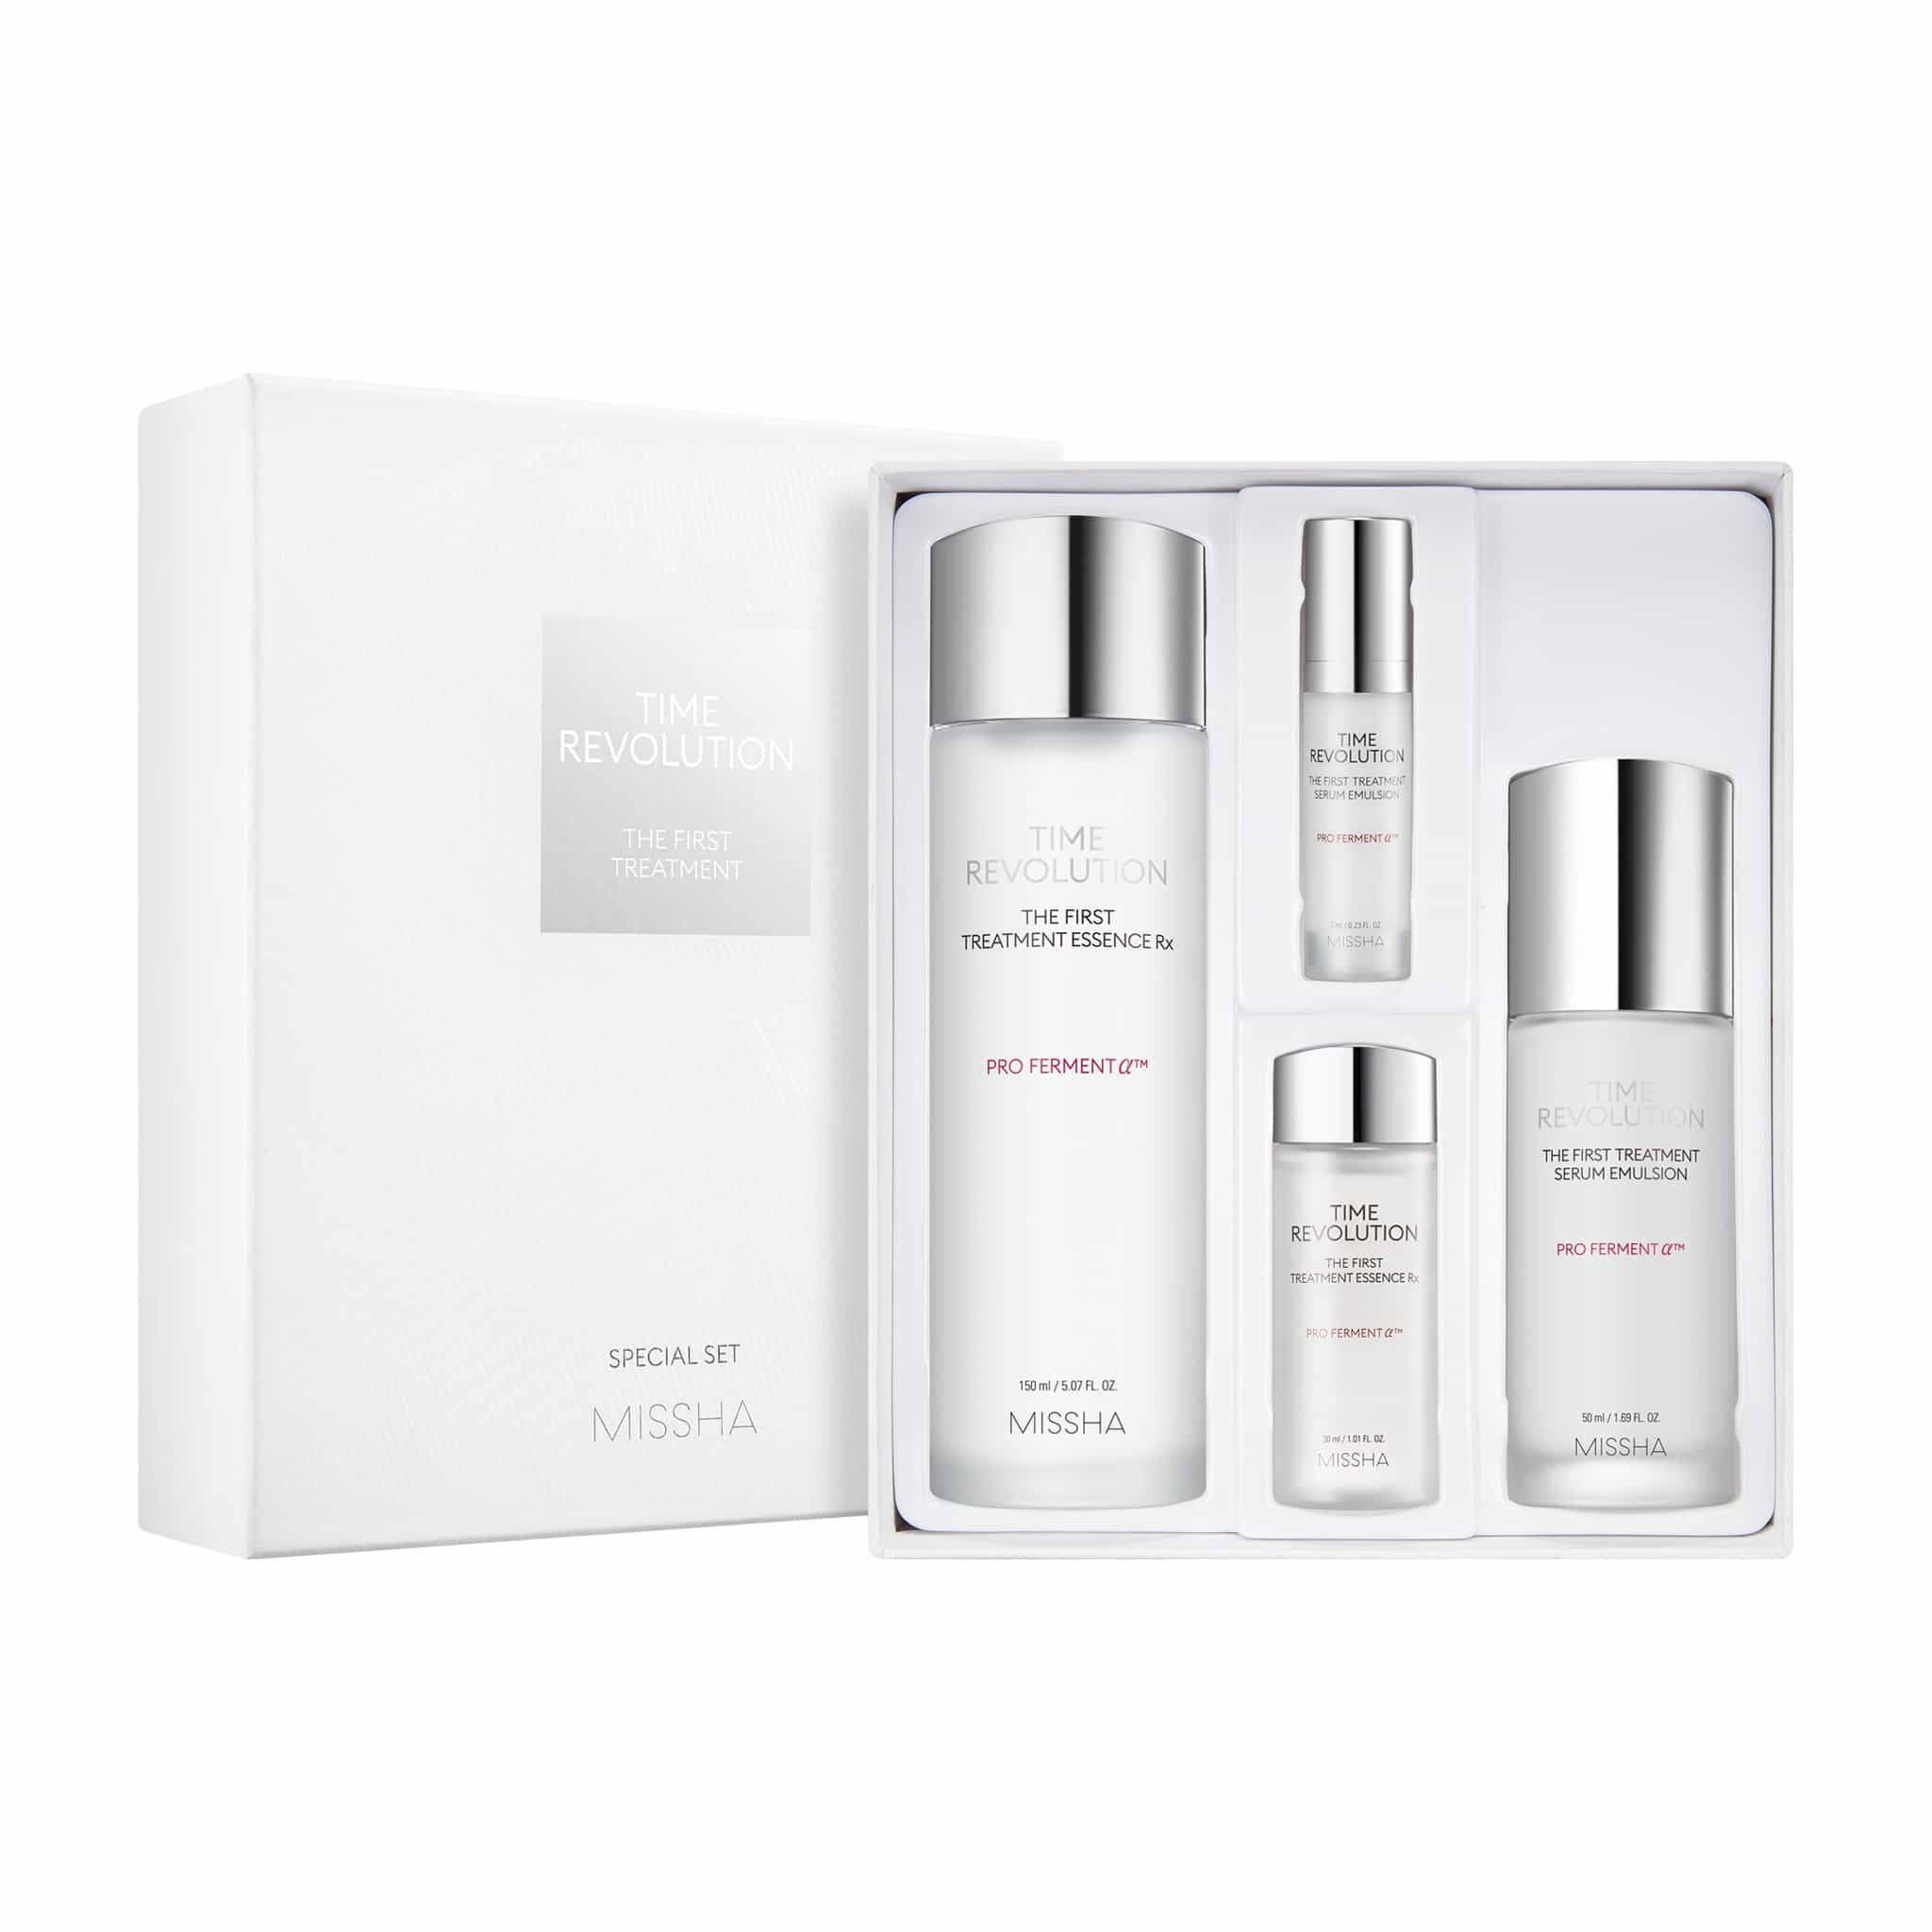 TIME REVOLUTION THE FIRST TREATMENT SPECIAL SET - MISSHA